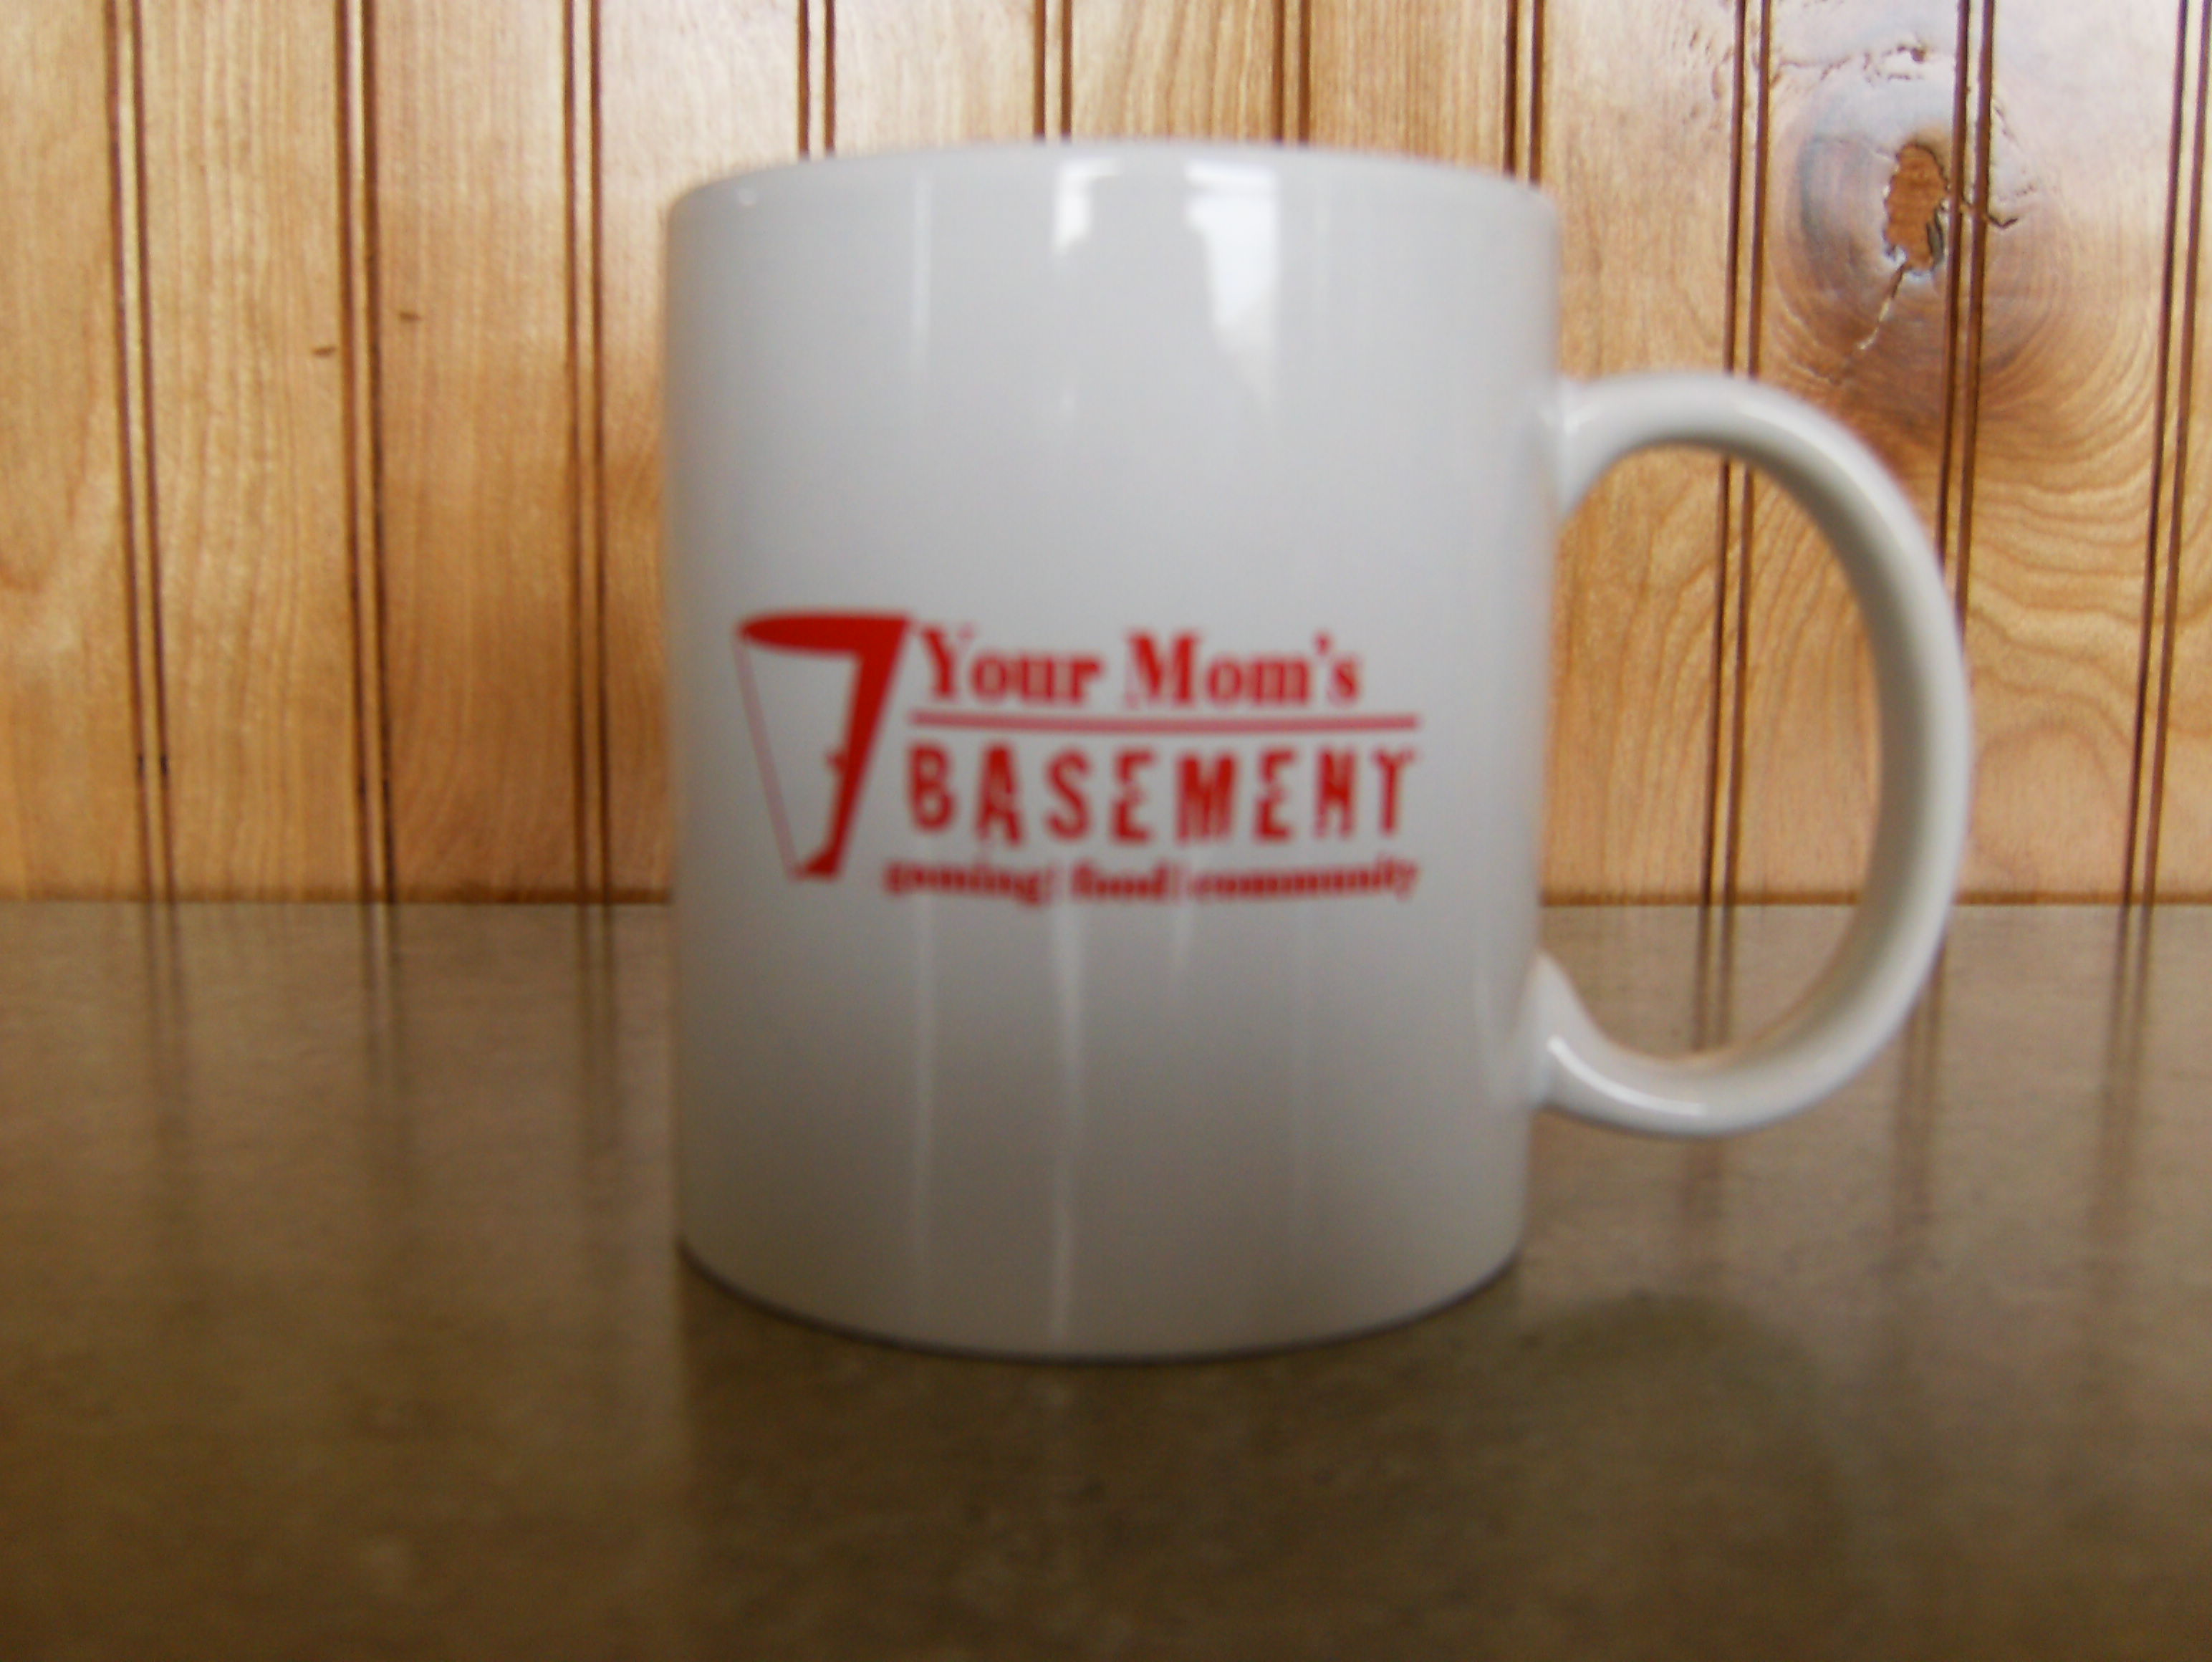 Free Coffee forever at Your Mom s Basement – Your Mom s Basement